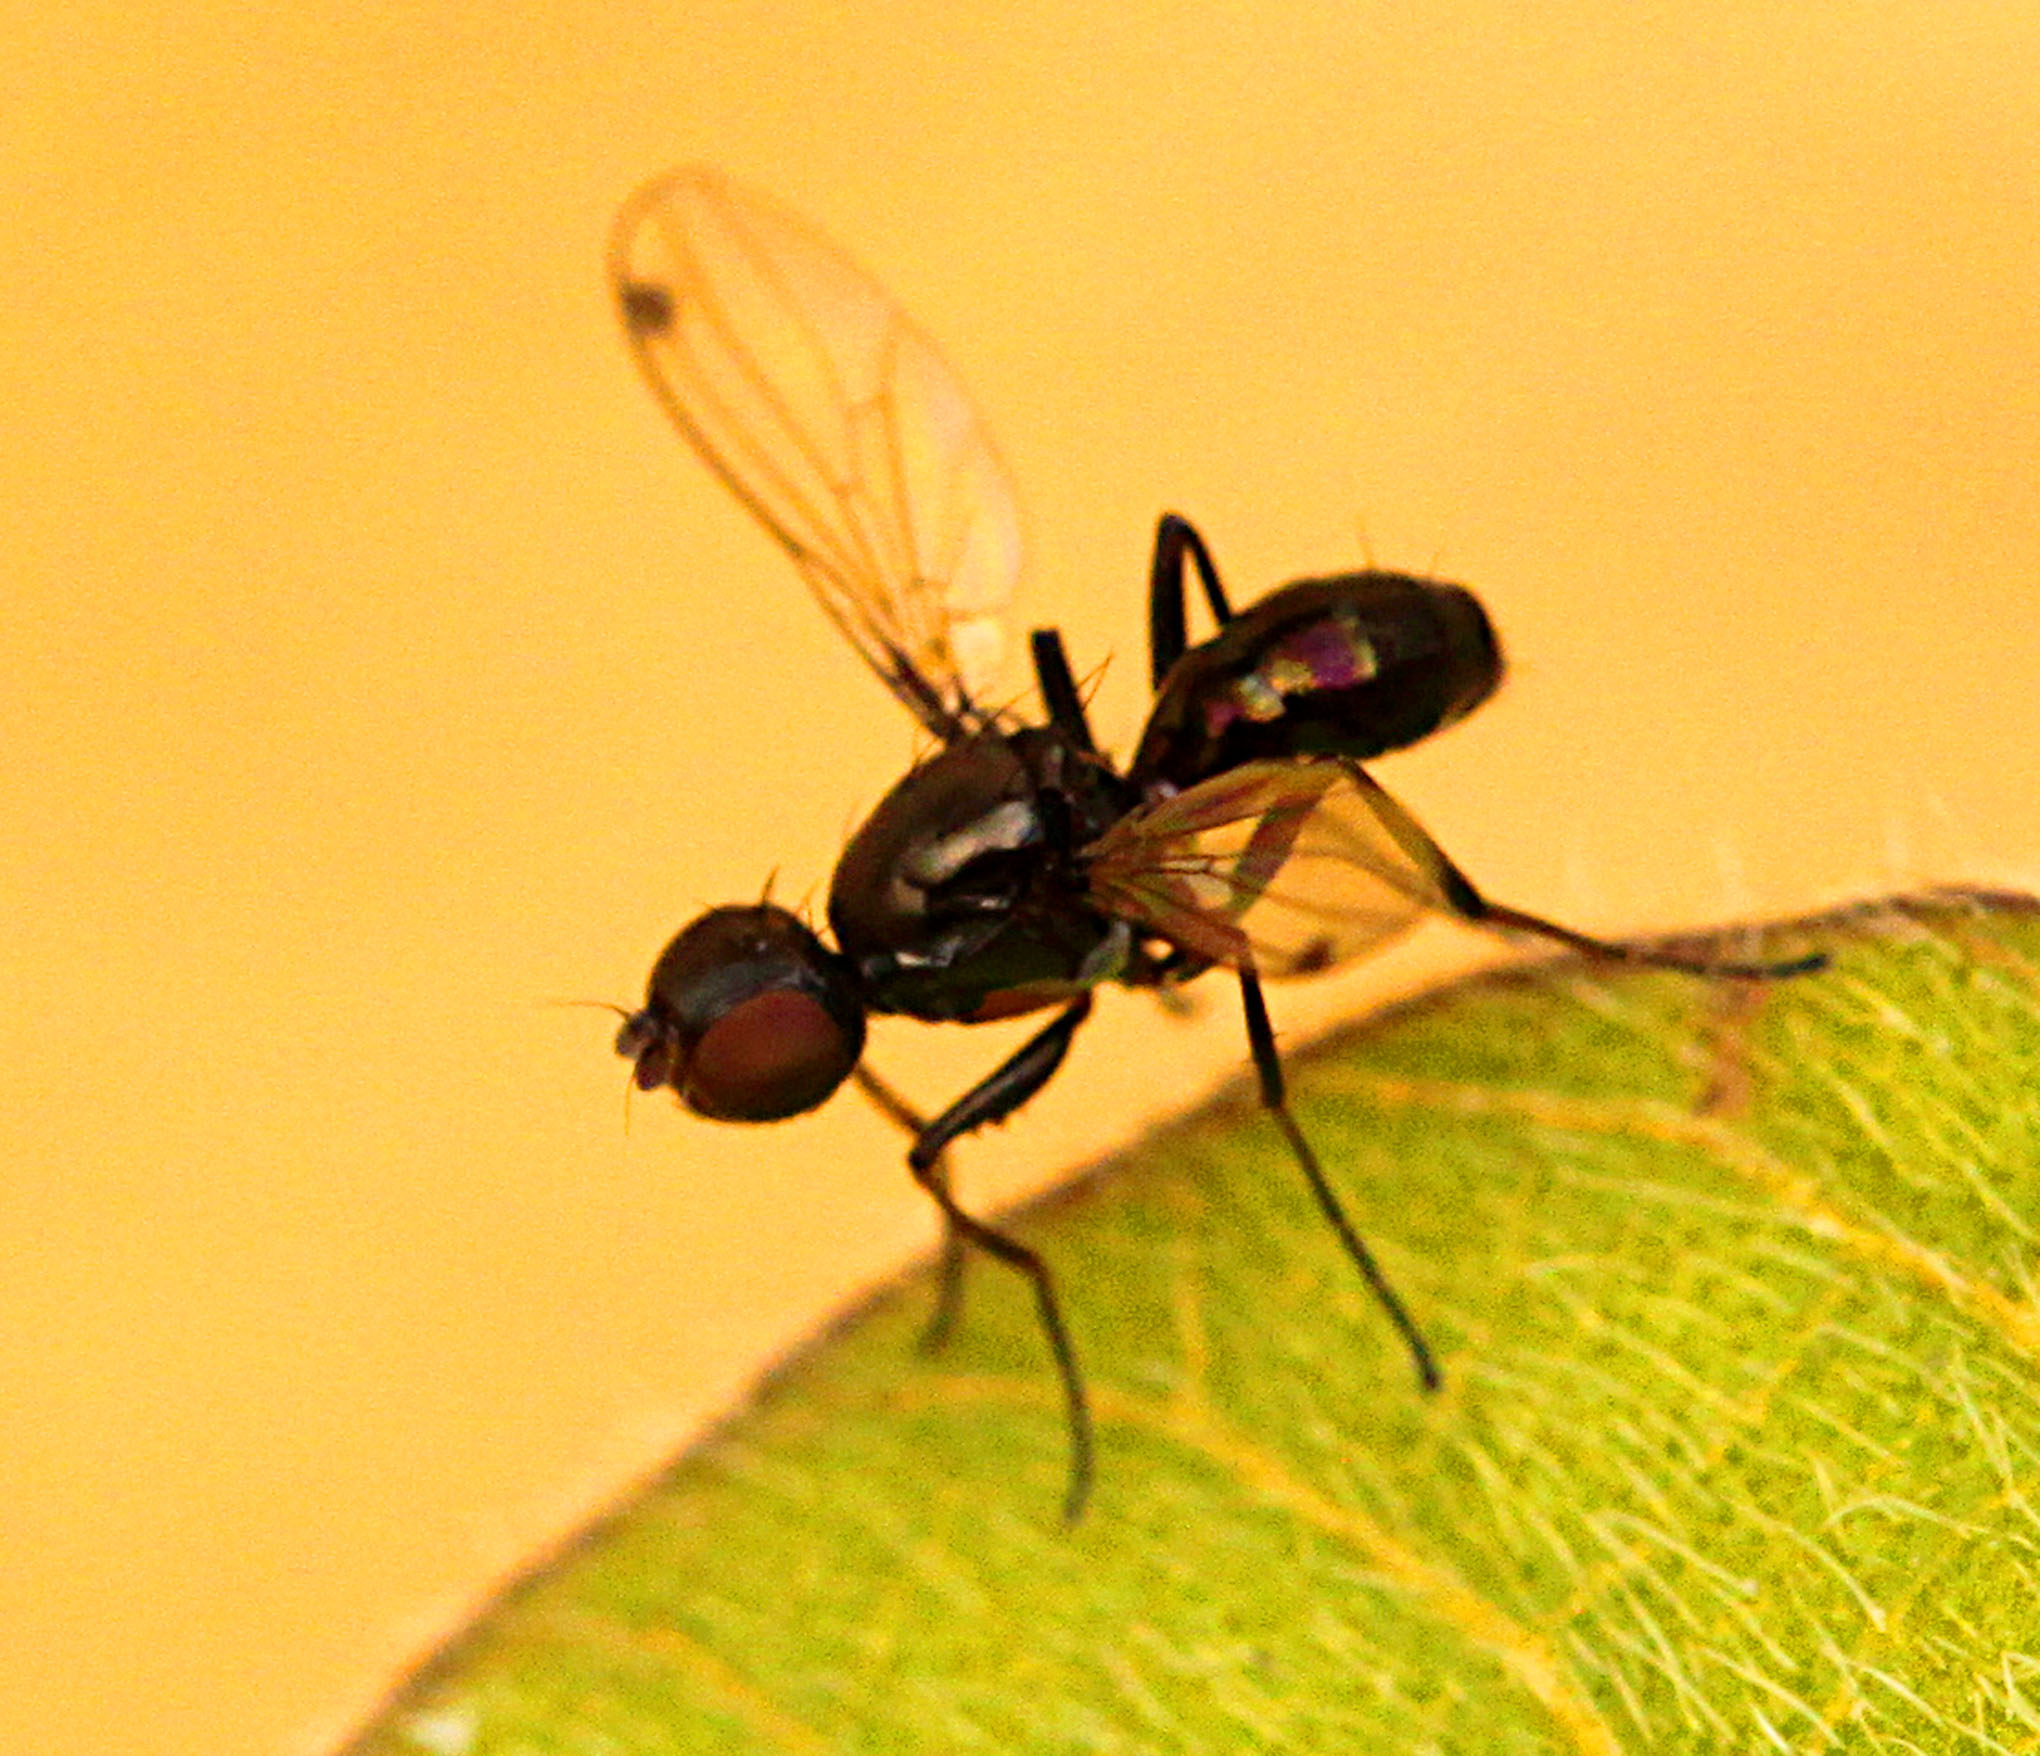 Fly - 13 IMG_8255